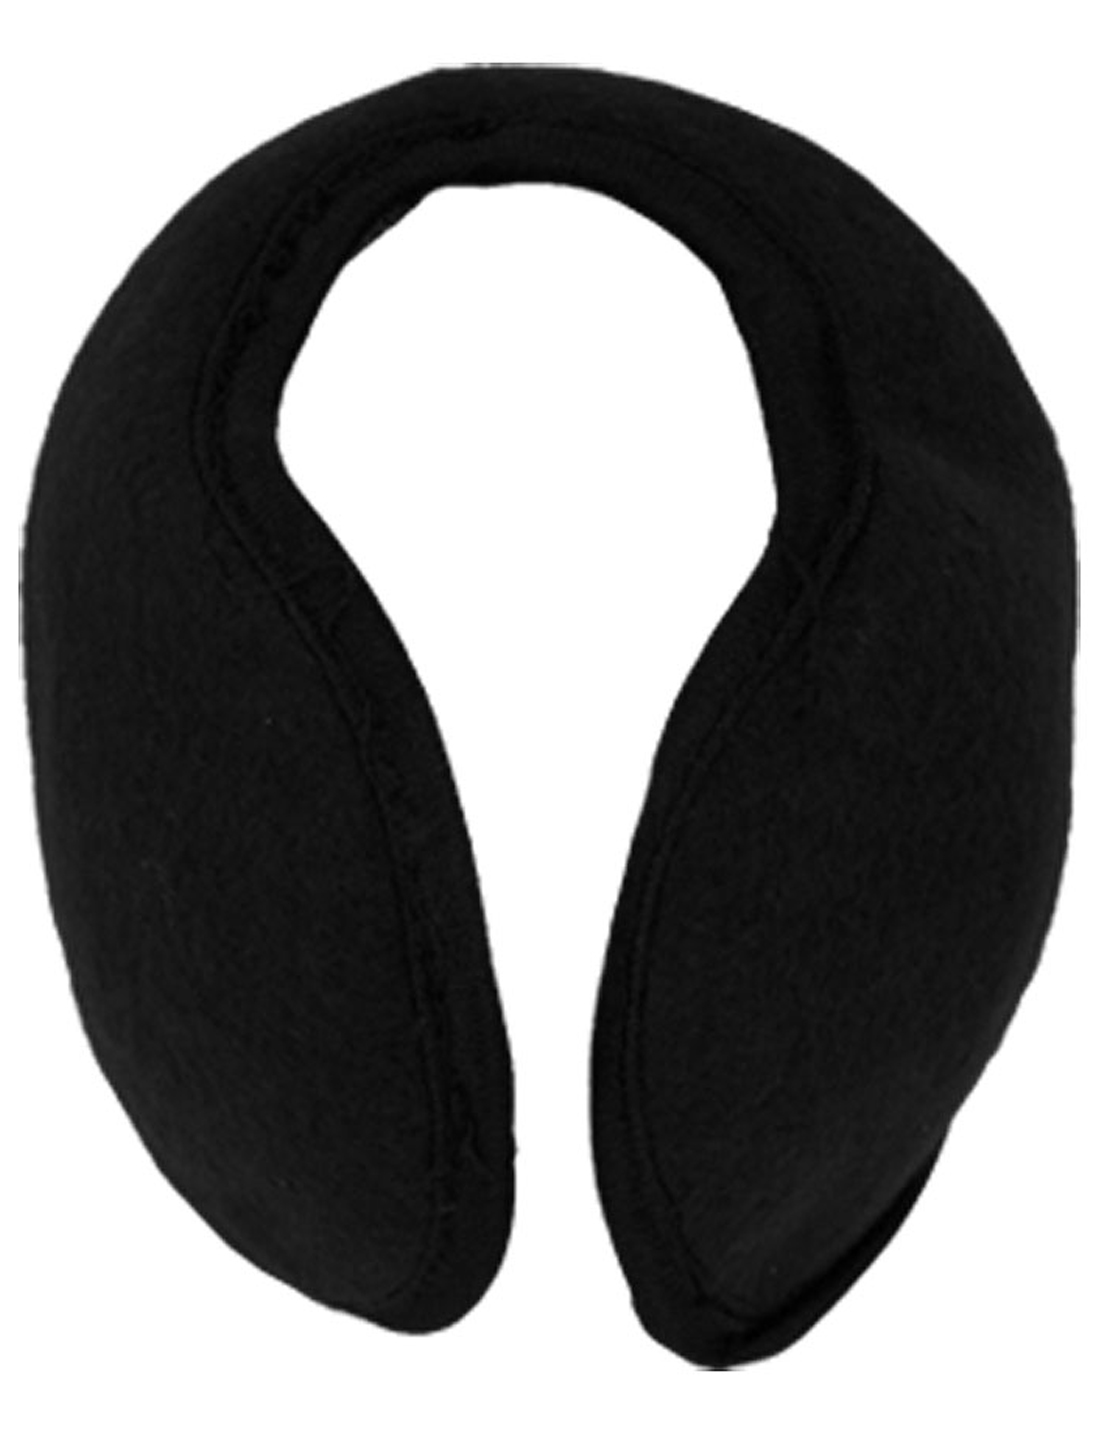 Black Behind Head Fleece Sponge Ear Band Warmers Earmuff